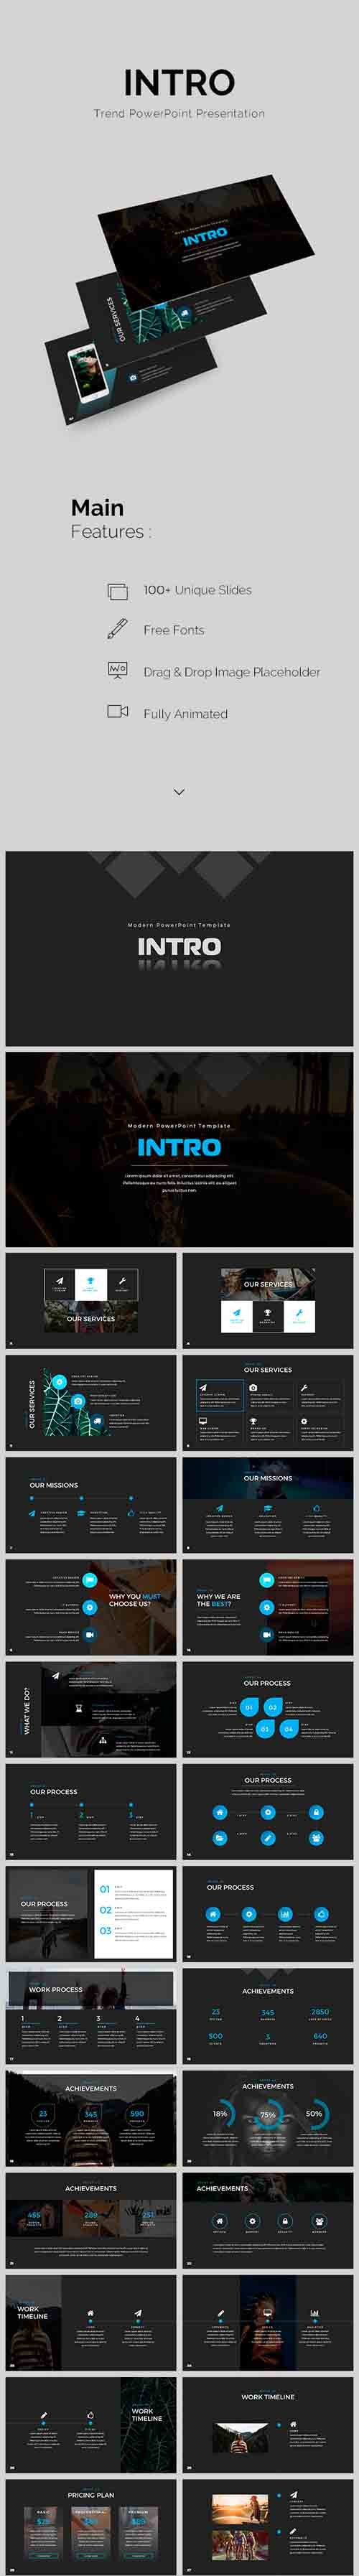 GR - Intro PowerPoint Template 19327491